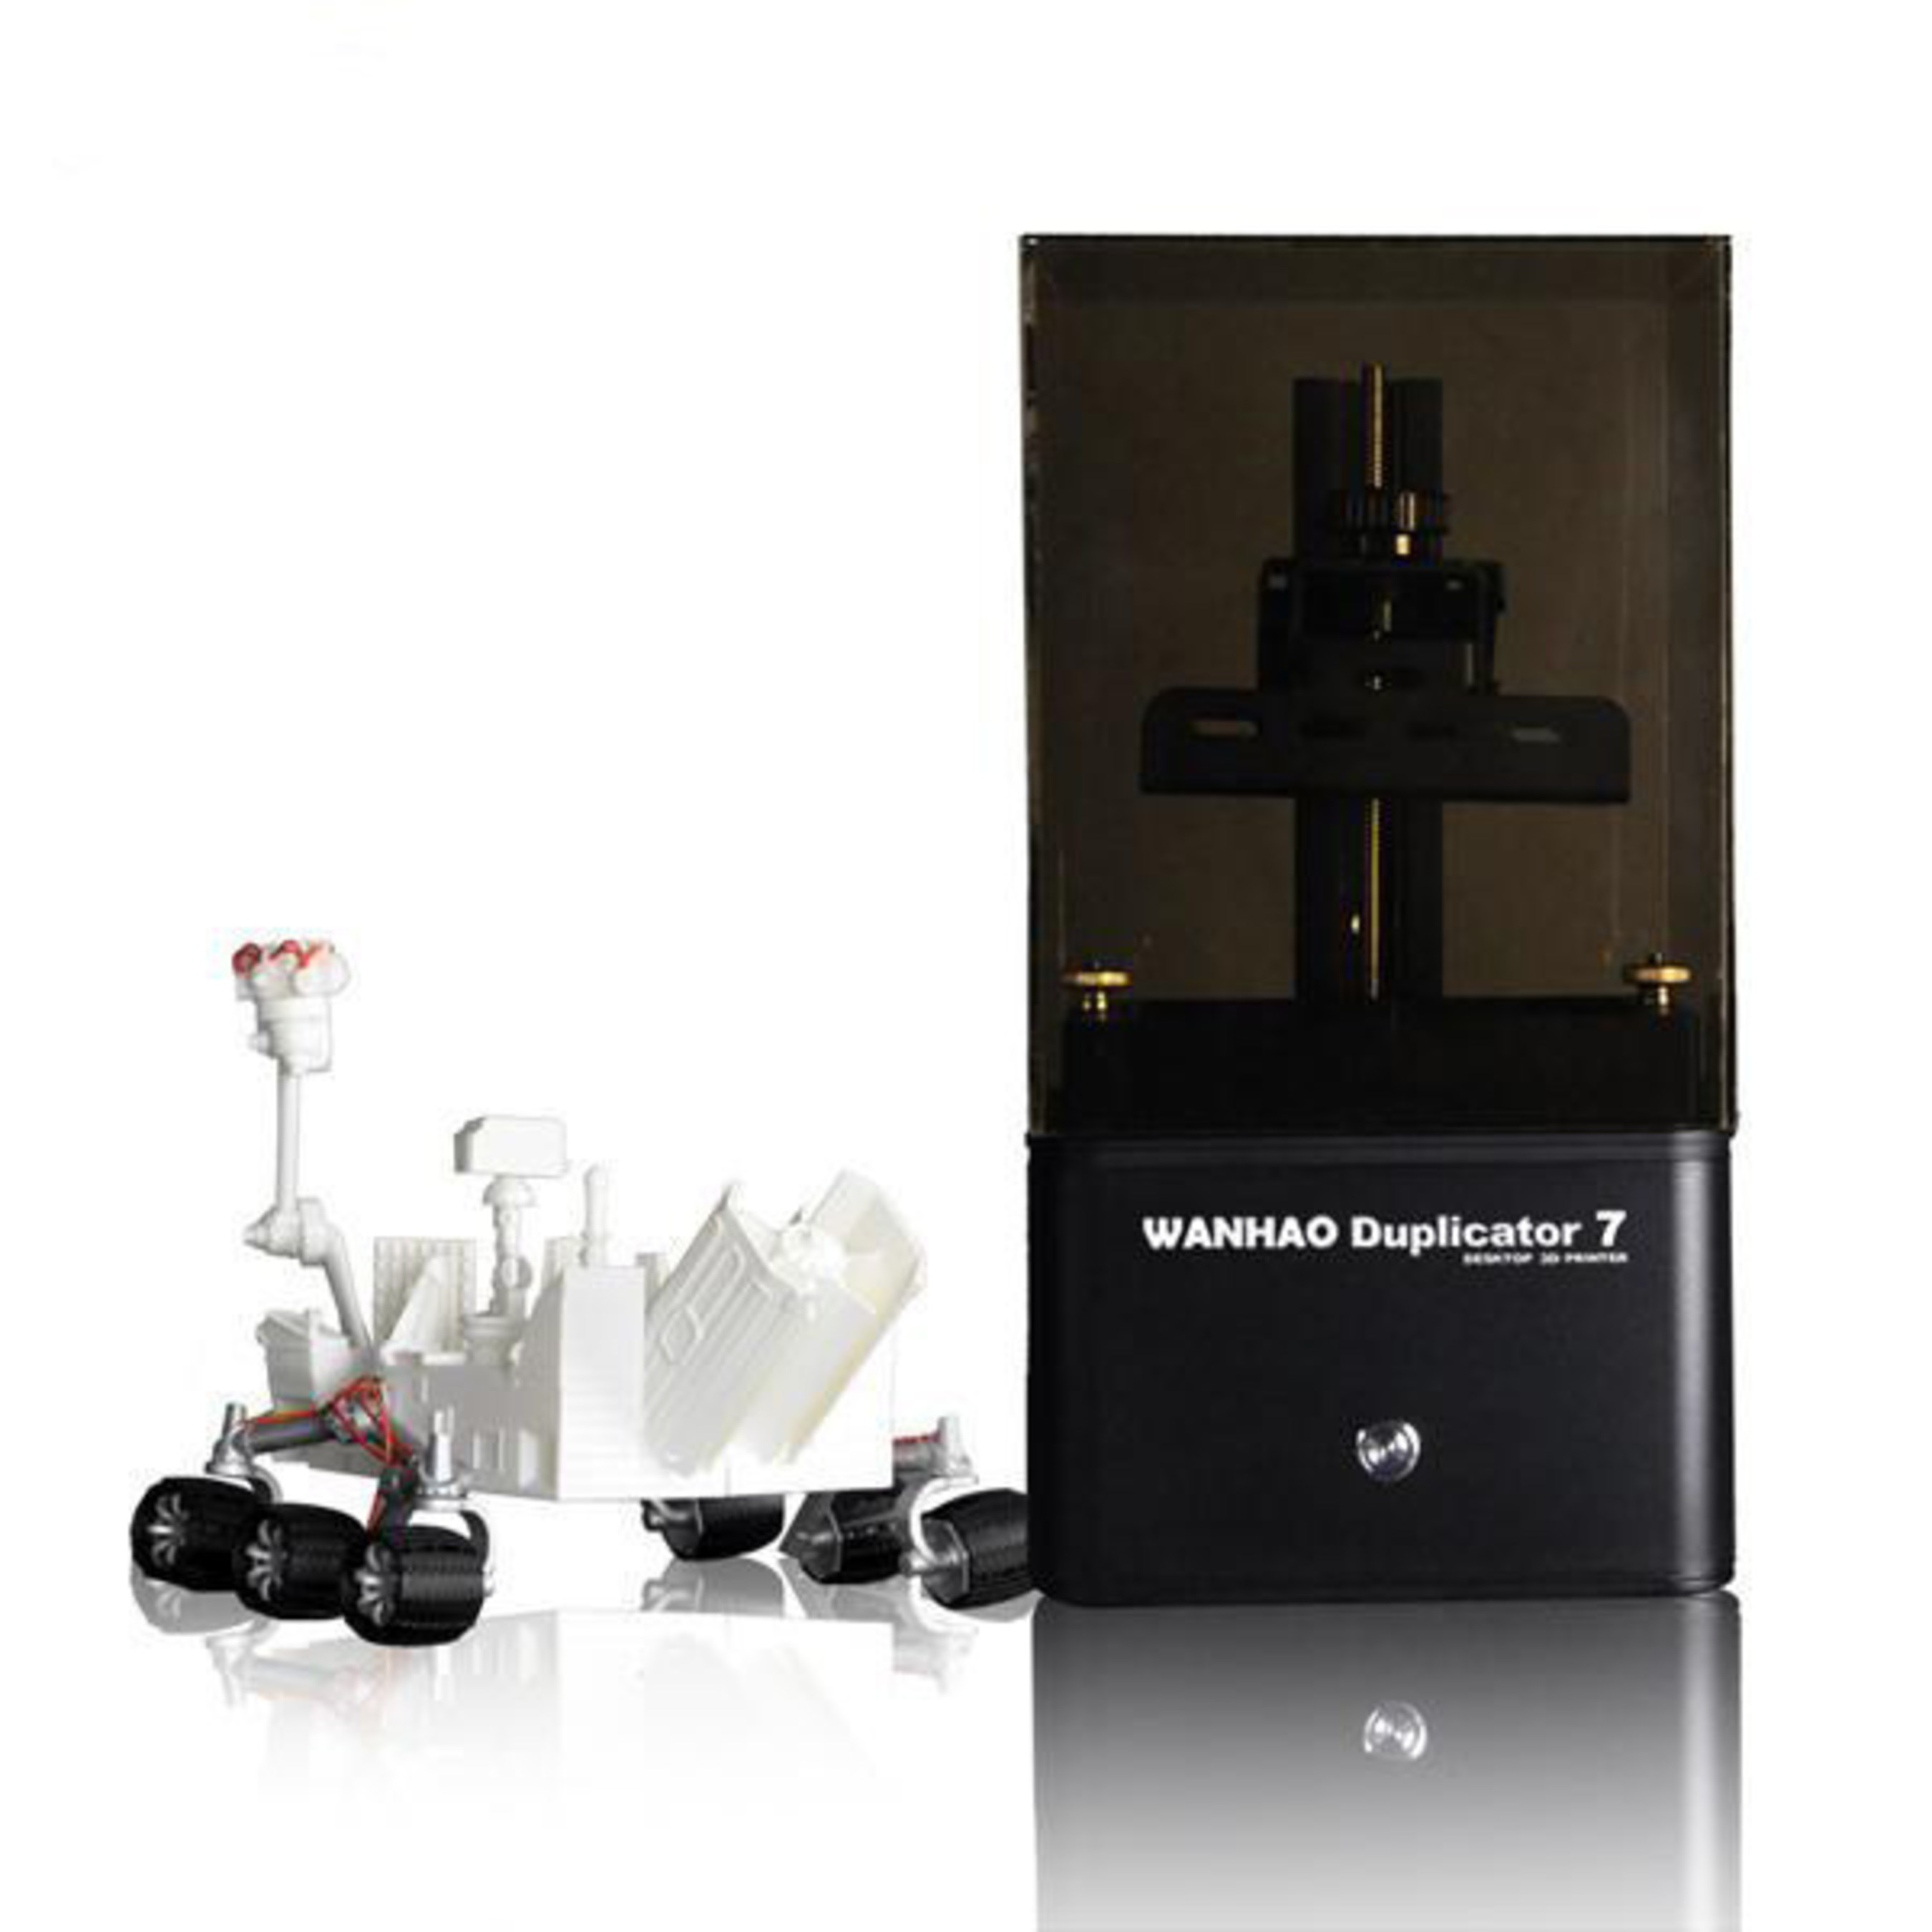 Wanhao USA Introduces the Duplicator 7 SLA 3D Printer